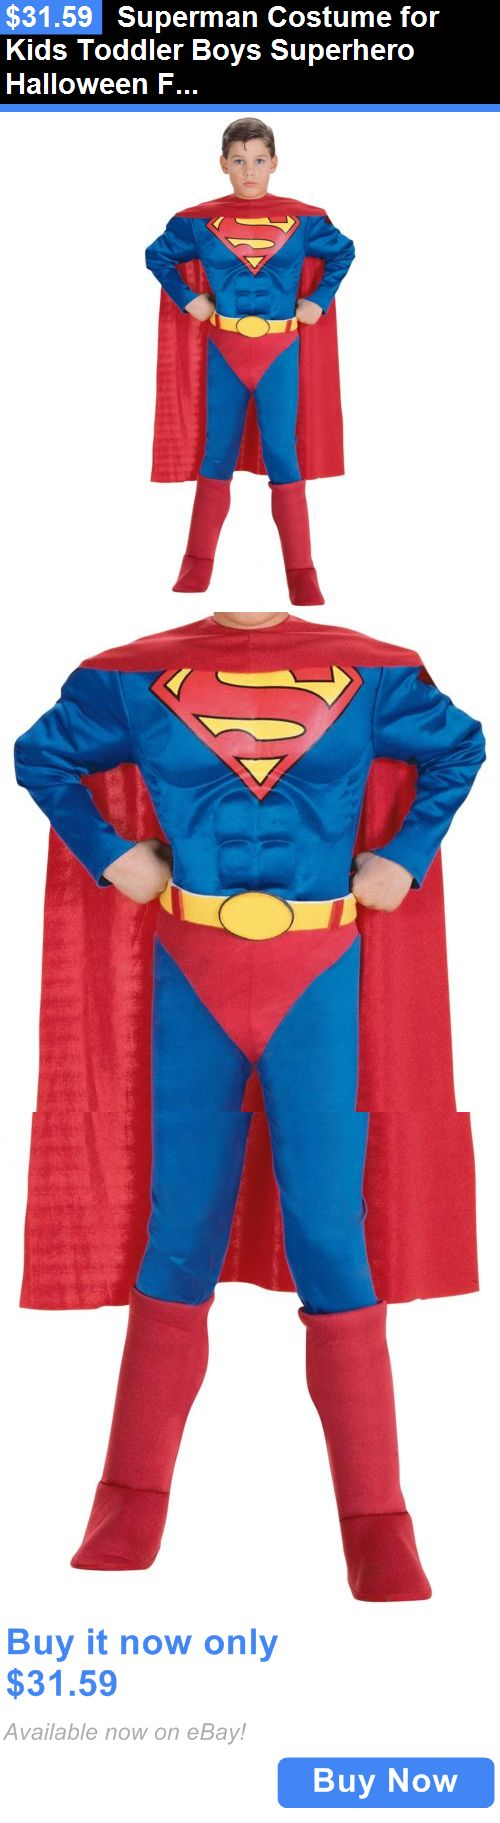 Superman hoodies for couples images amp pictures becuo - Kids Costumes Superman Costume For Kids Toddler Boys Superhero Halloween Fancy Dress Buy It Now